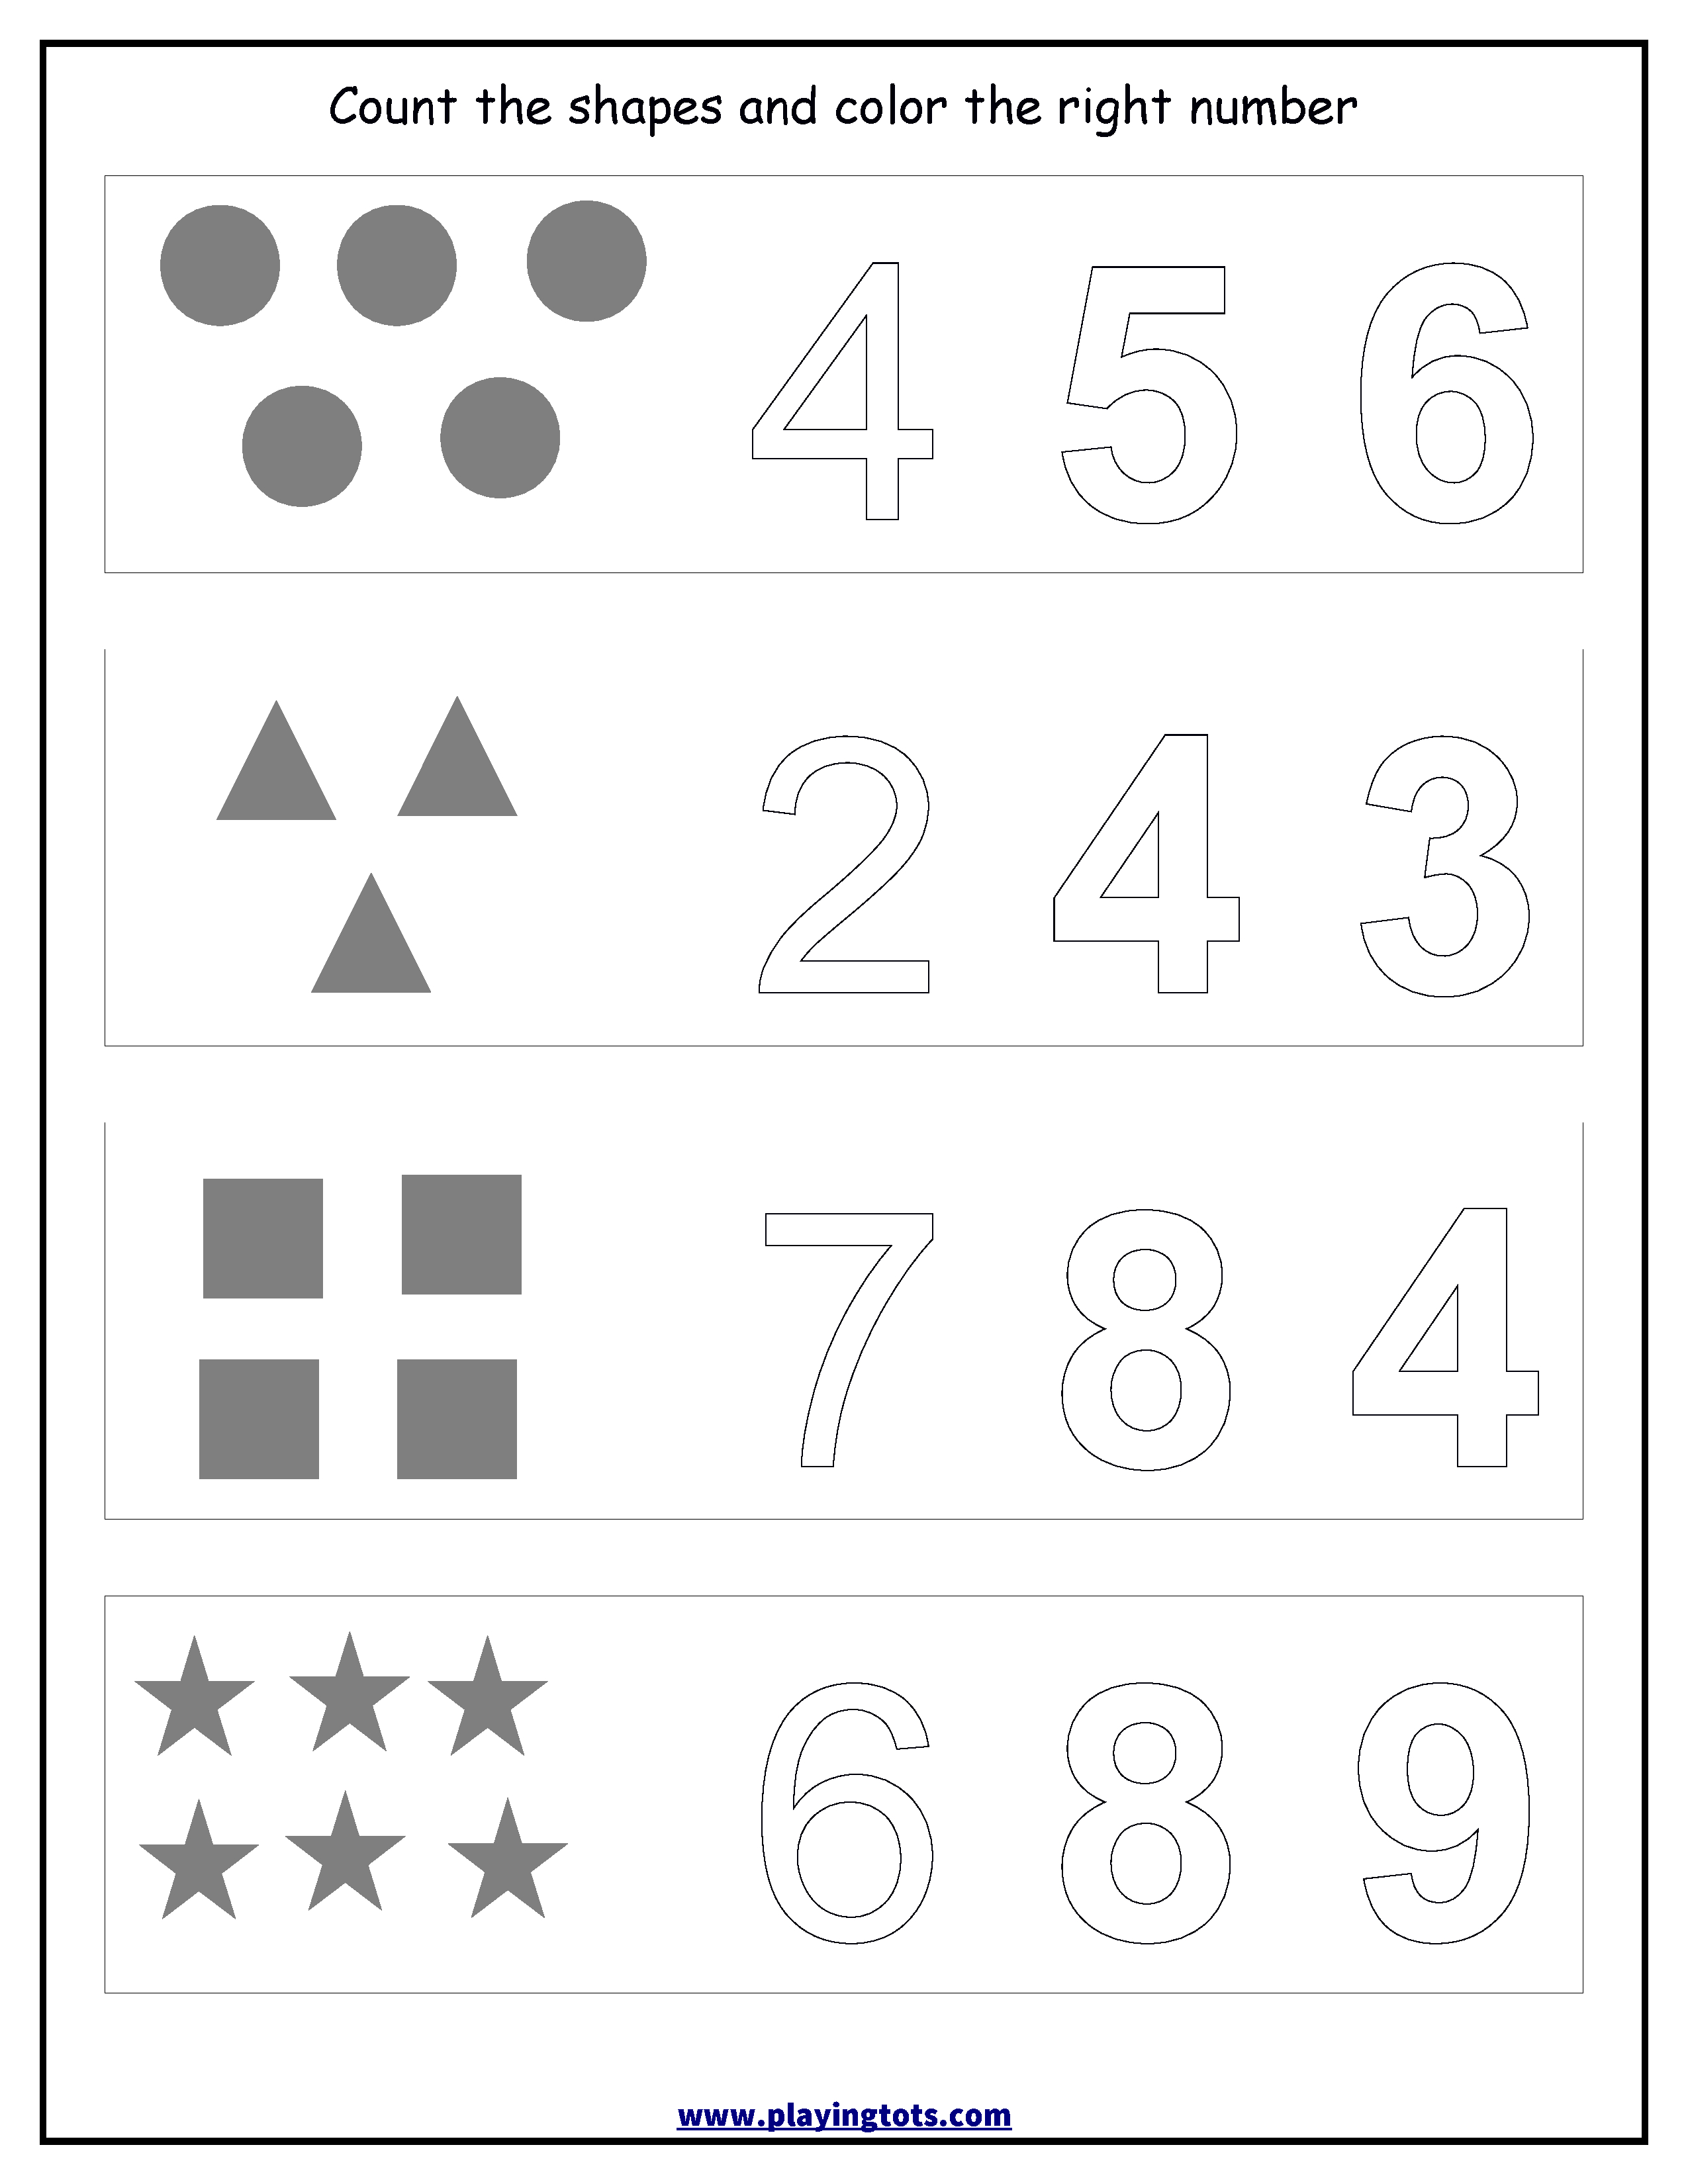 Worksheet - Counting Shapes,coloring Numbers Keywords:free | Free Printable Worksheets For Kindergarten Pdf